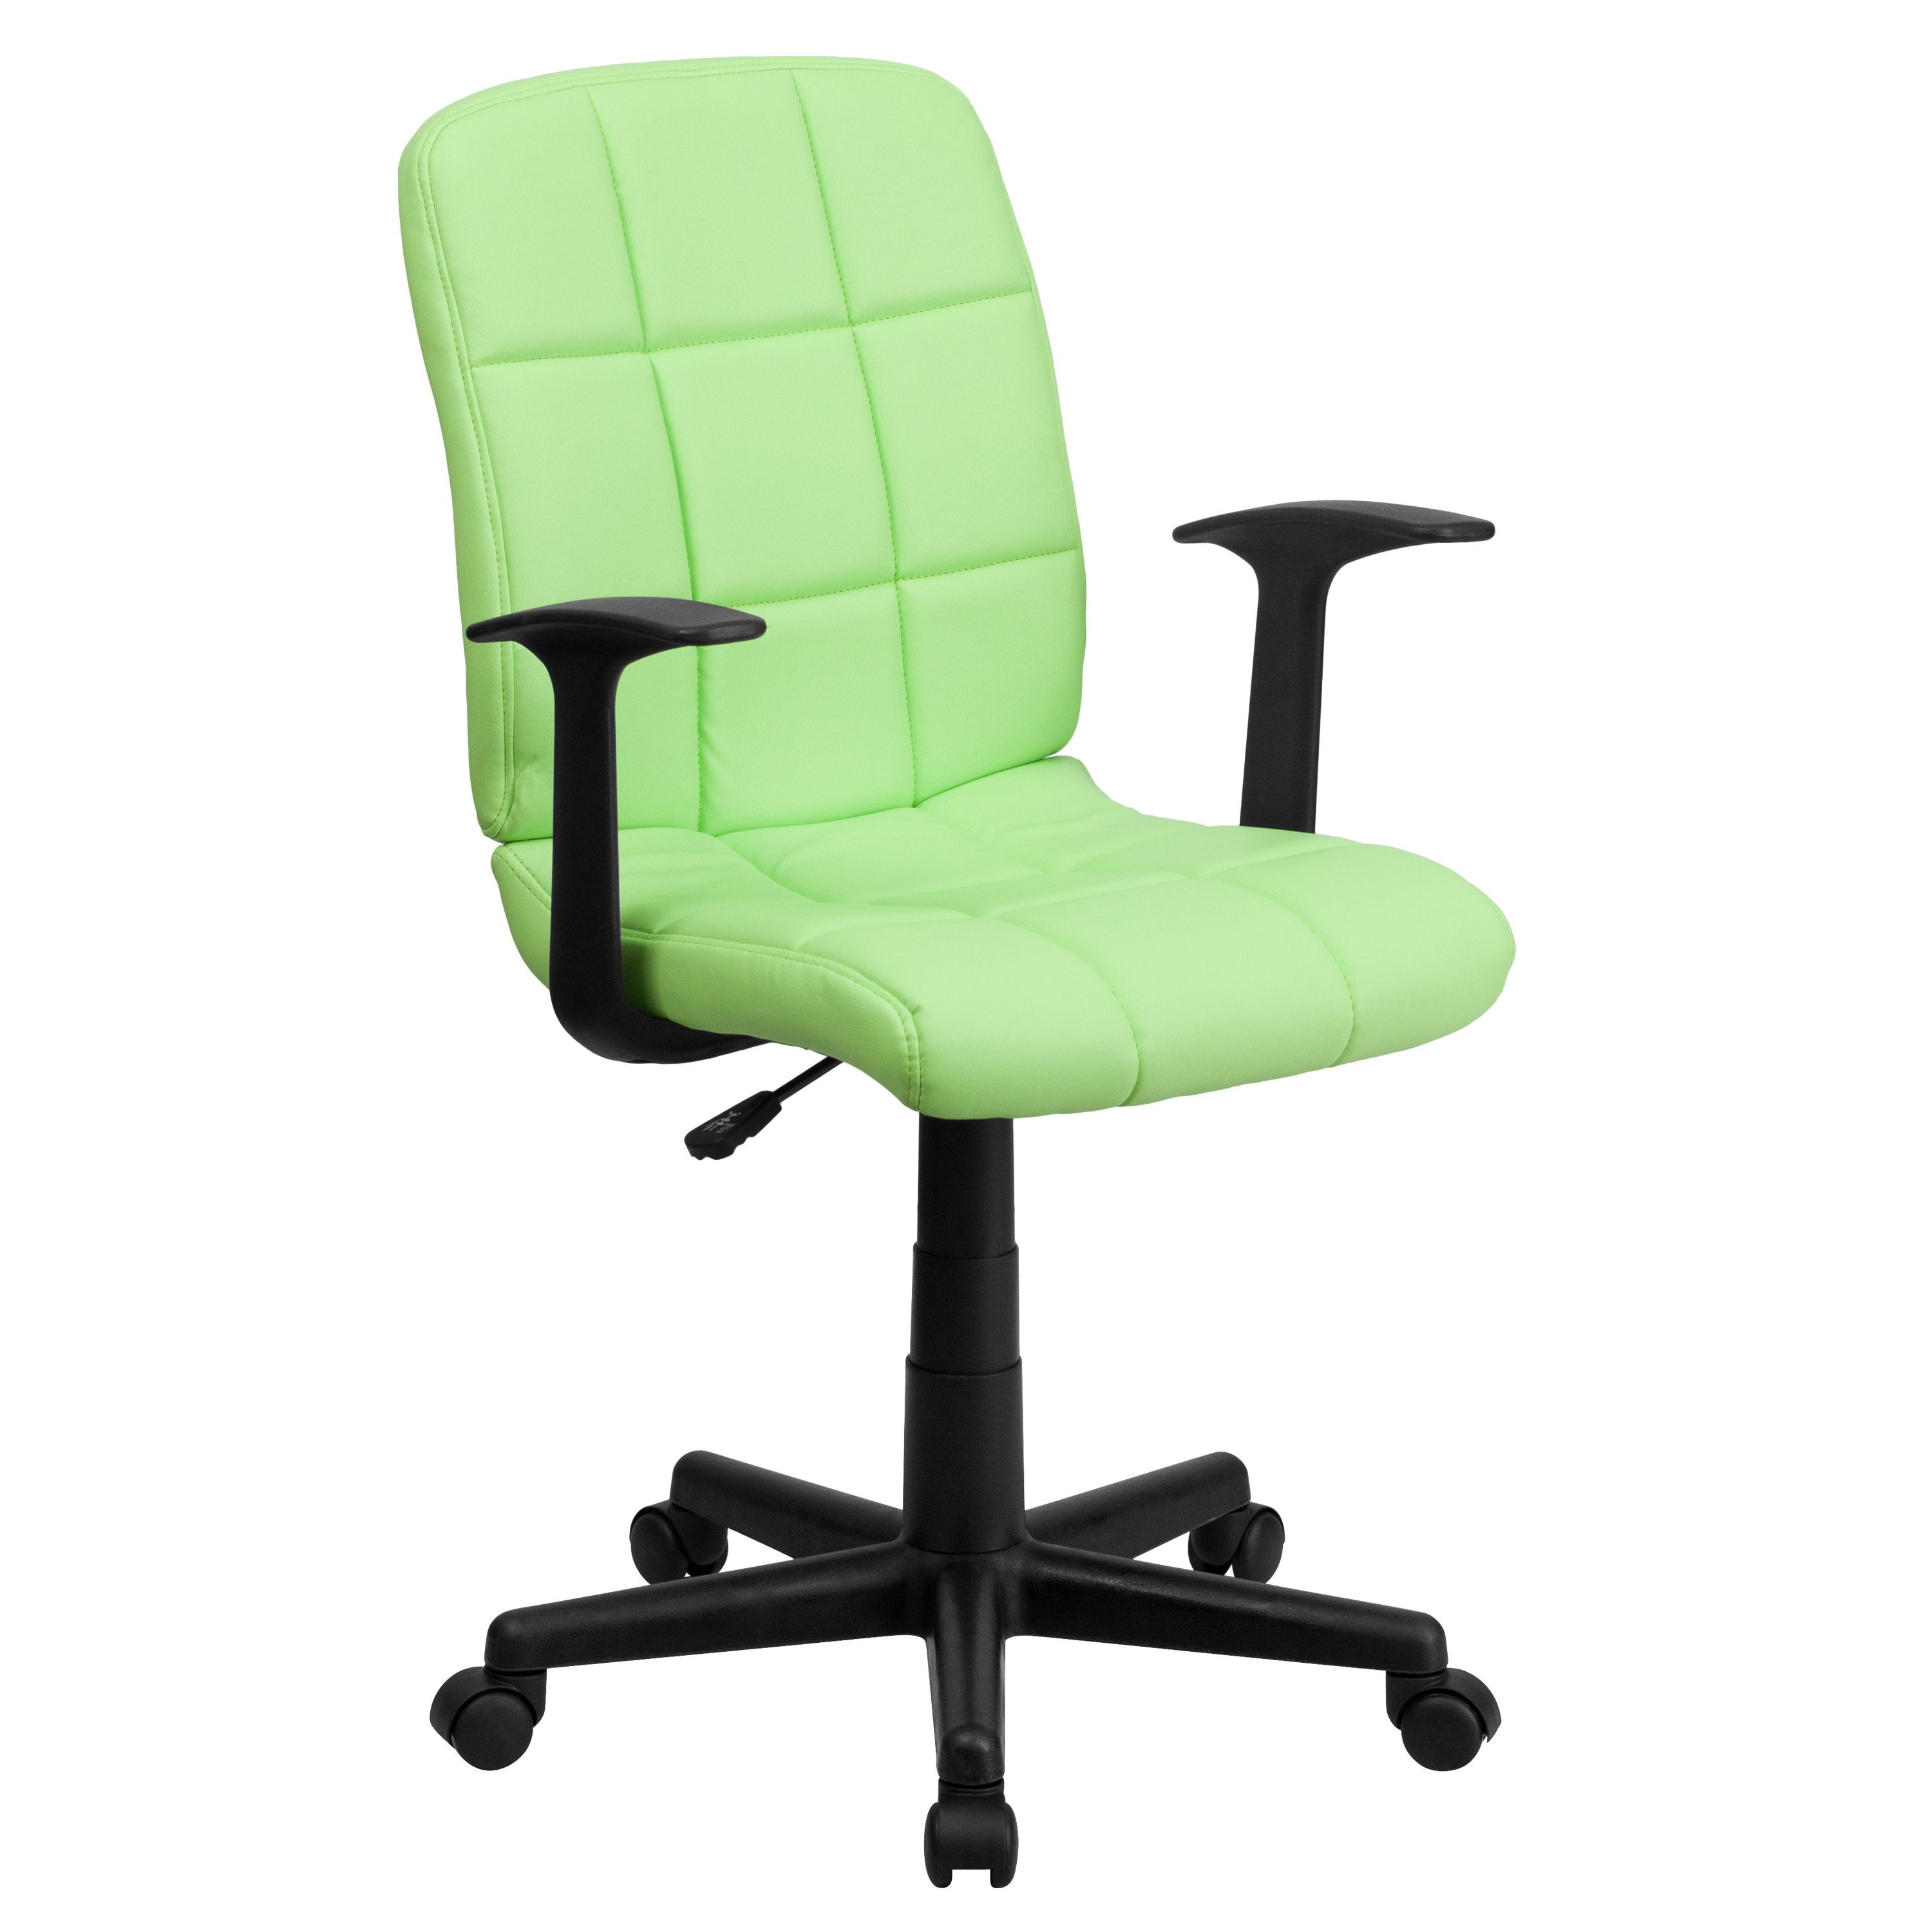 Flash Furniture  Mid-back Swivel Computer Chair Green Vinyl Upholstery